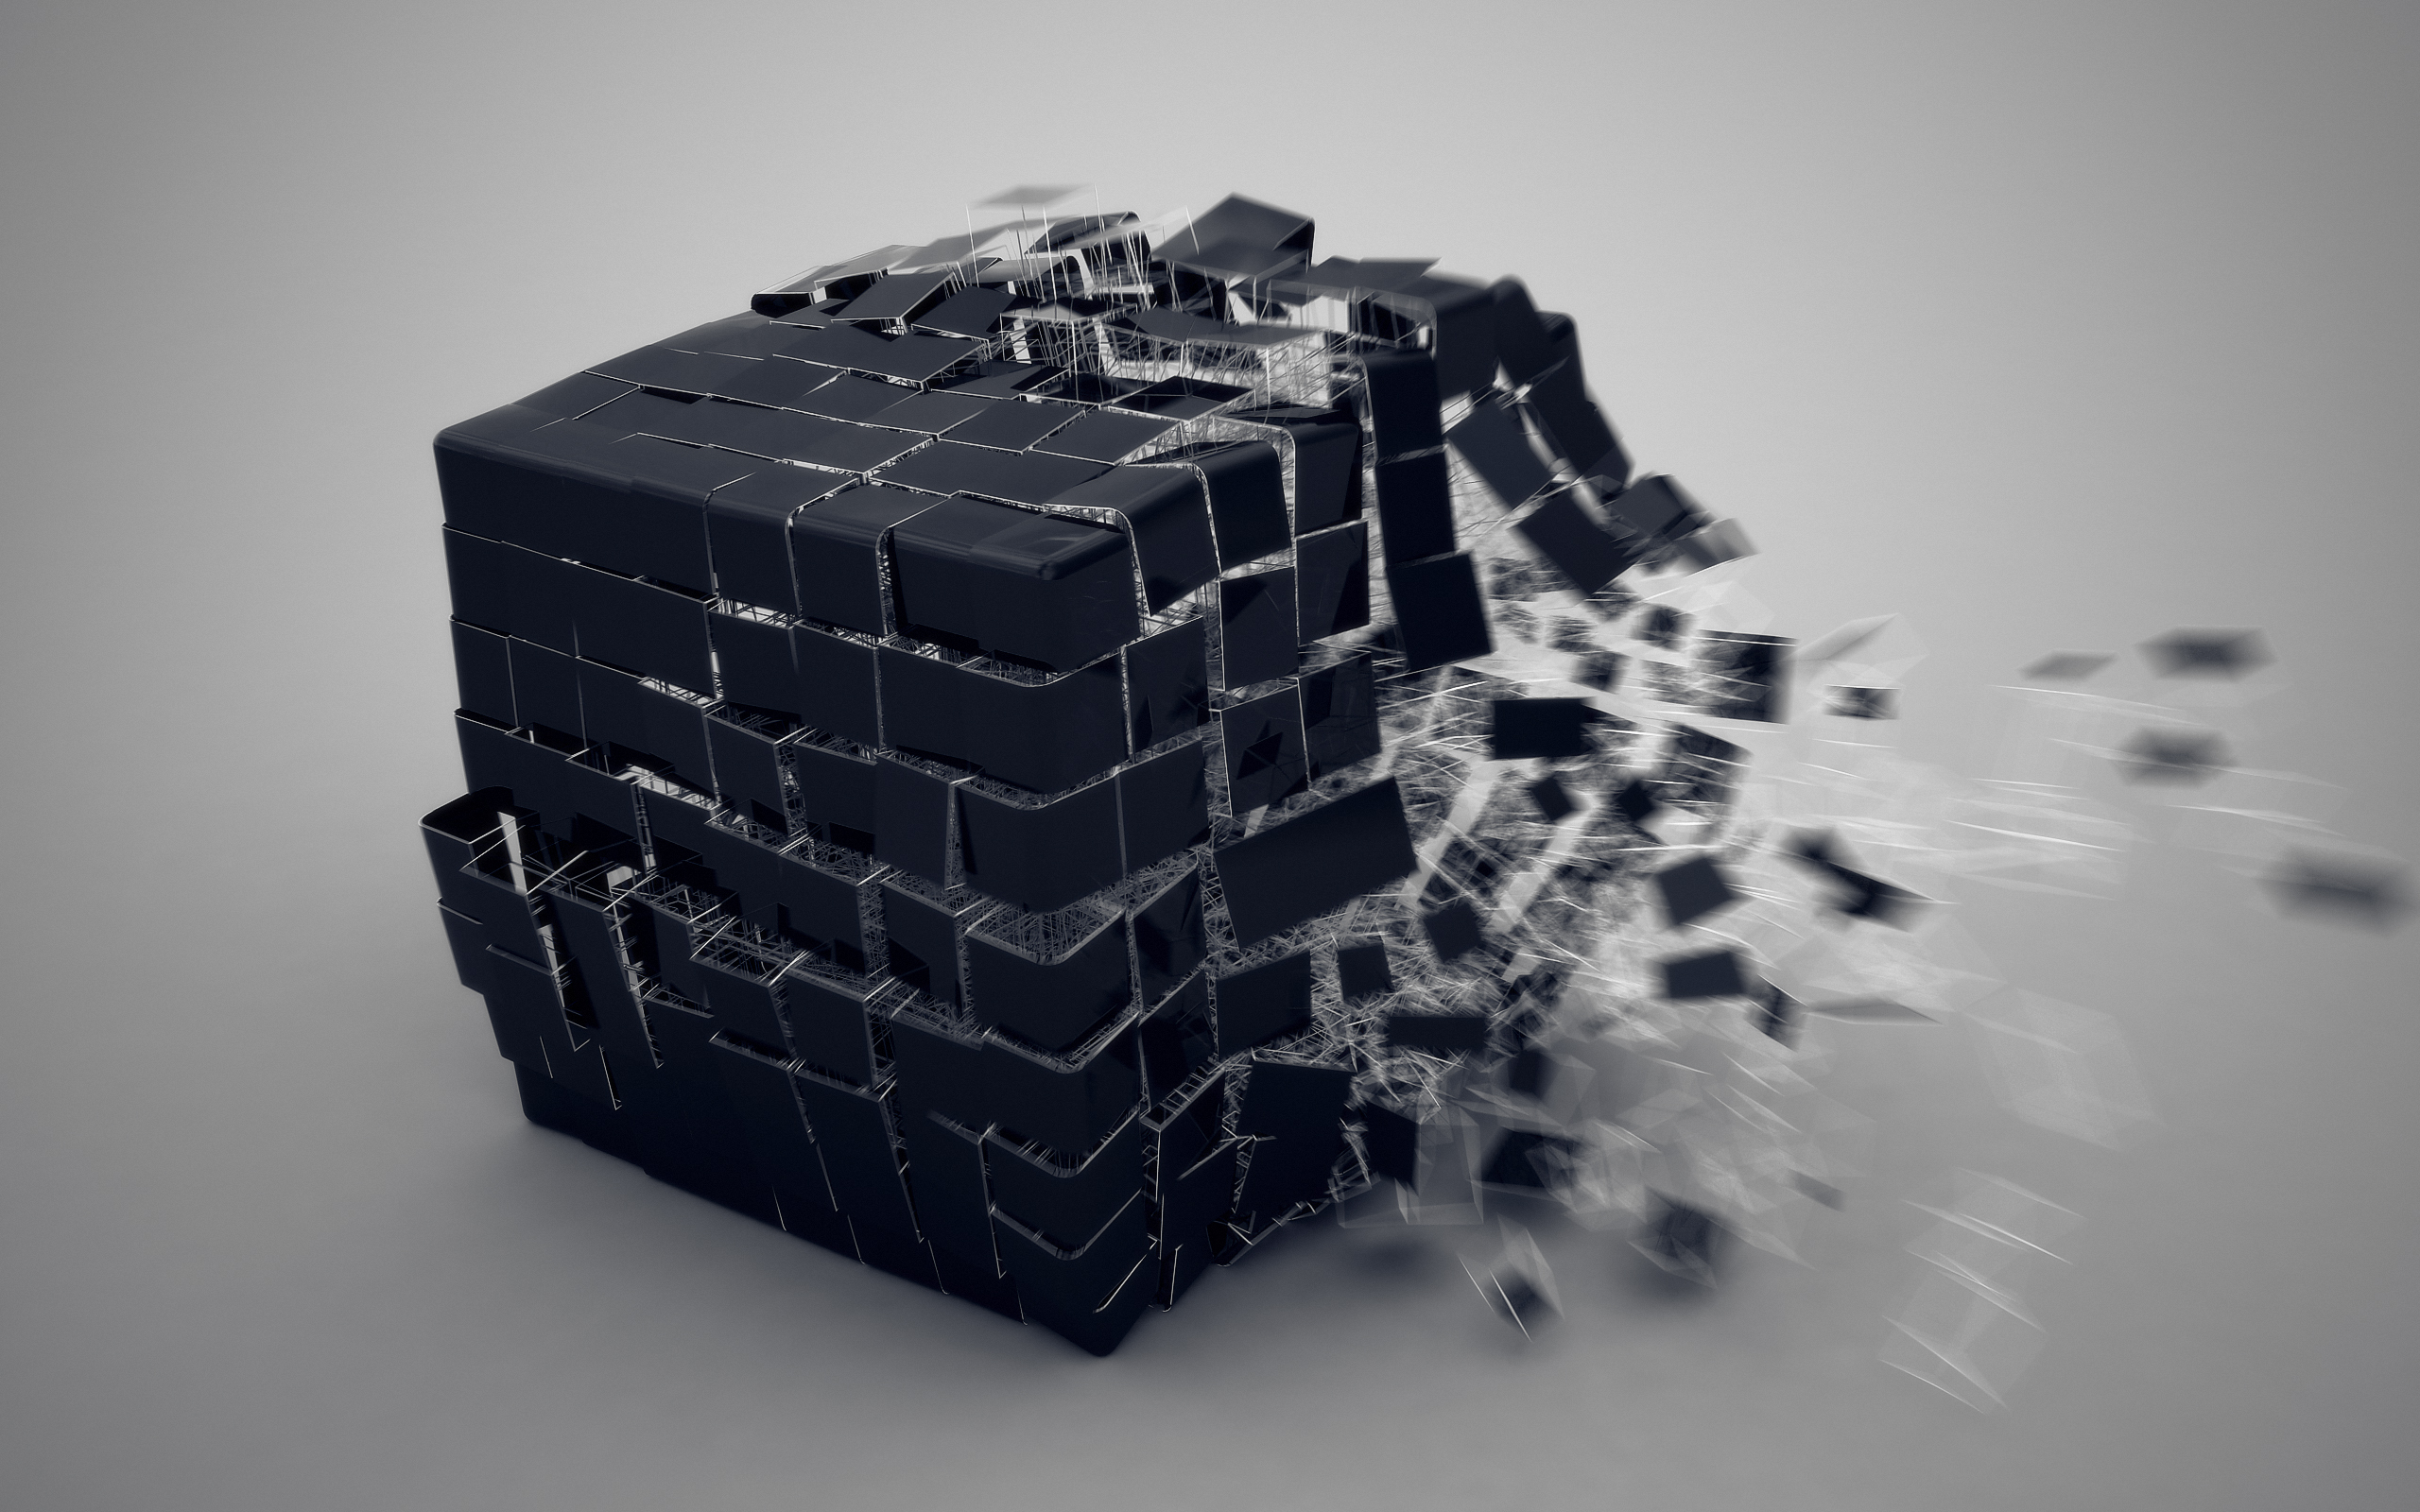 3D Cube Explosion by Patan77xD